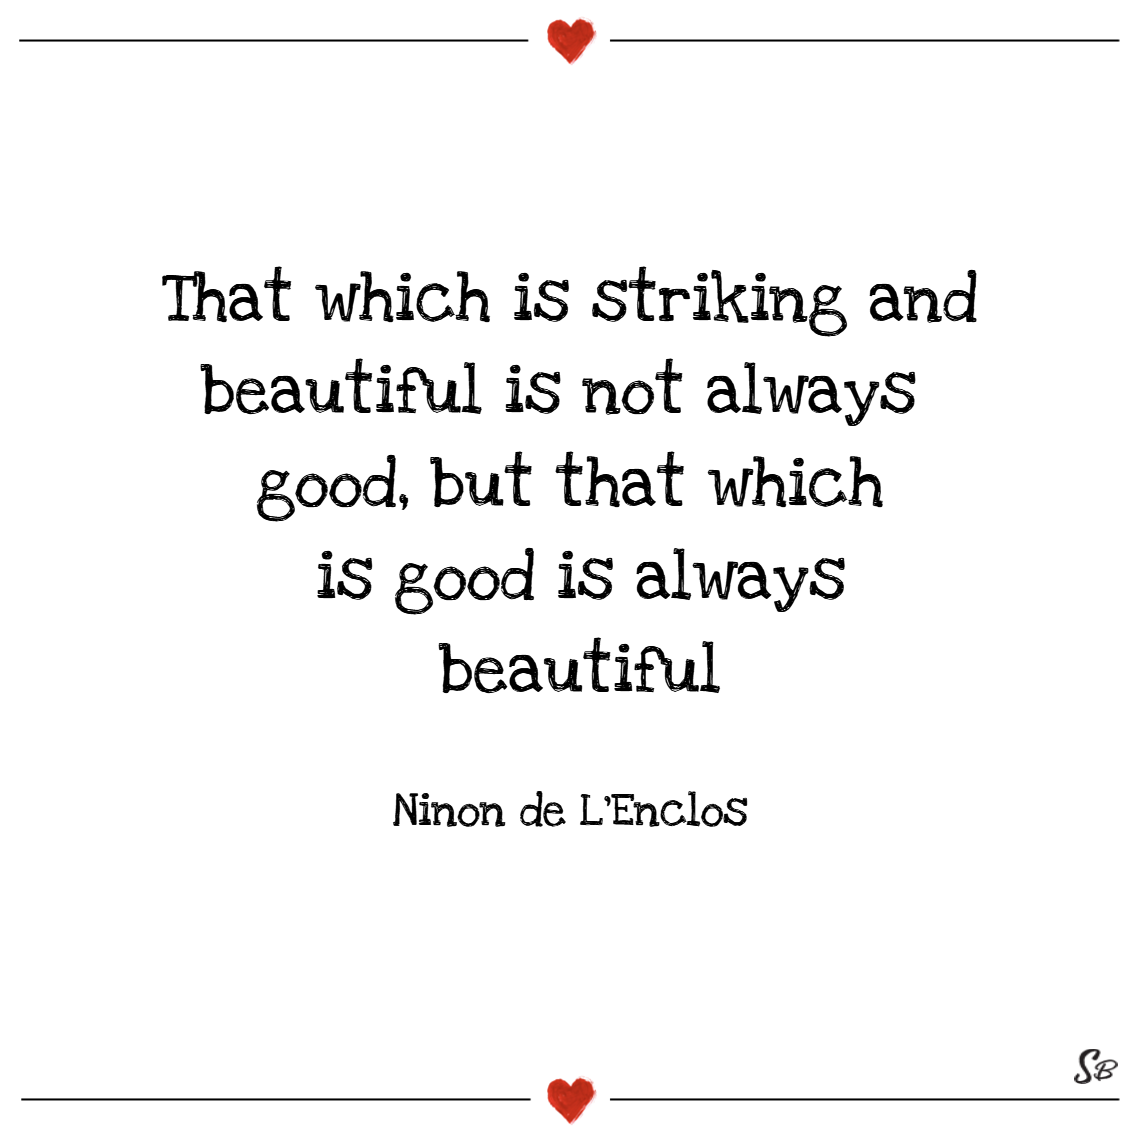 That which is striking and beautiful is not always good, but that which is good is always beautiful. – ninon de l'enclos